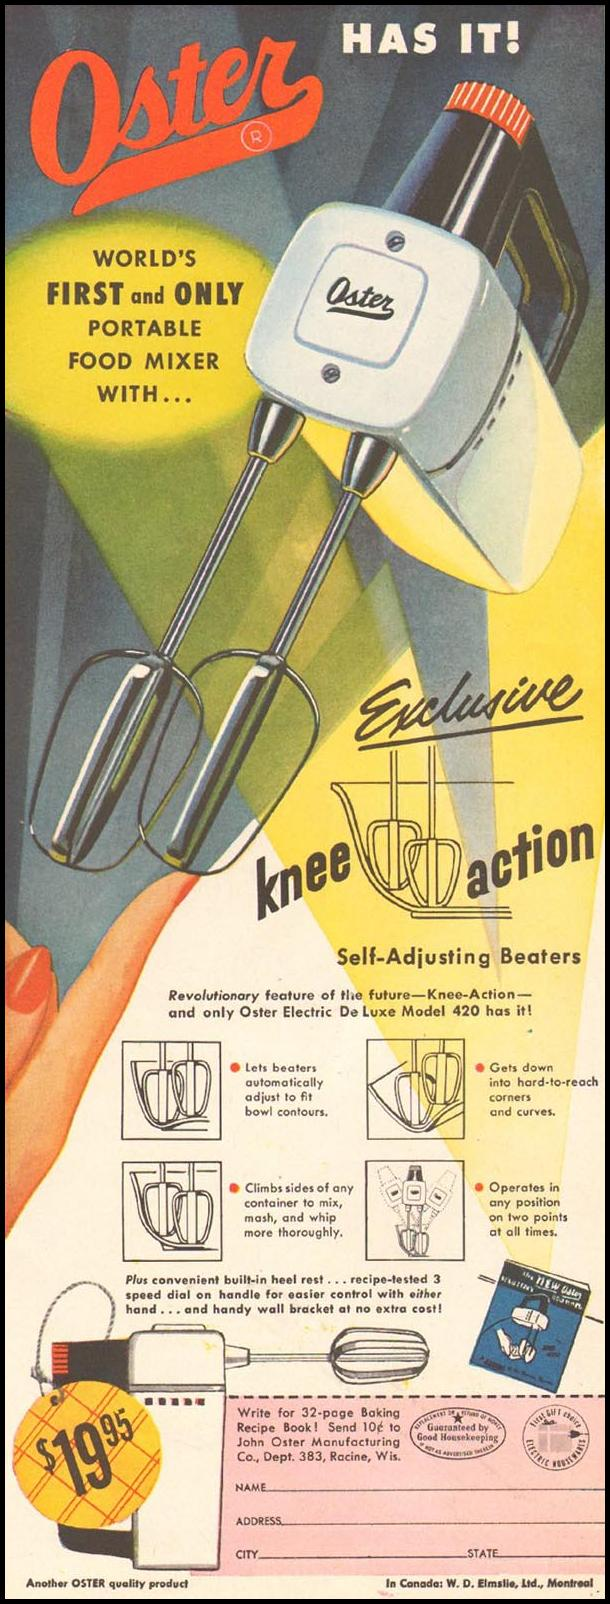 OSTER HAND MIXER LADIES' HOME JOURNAL 03/01/1954 p. 199